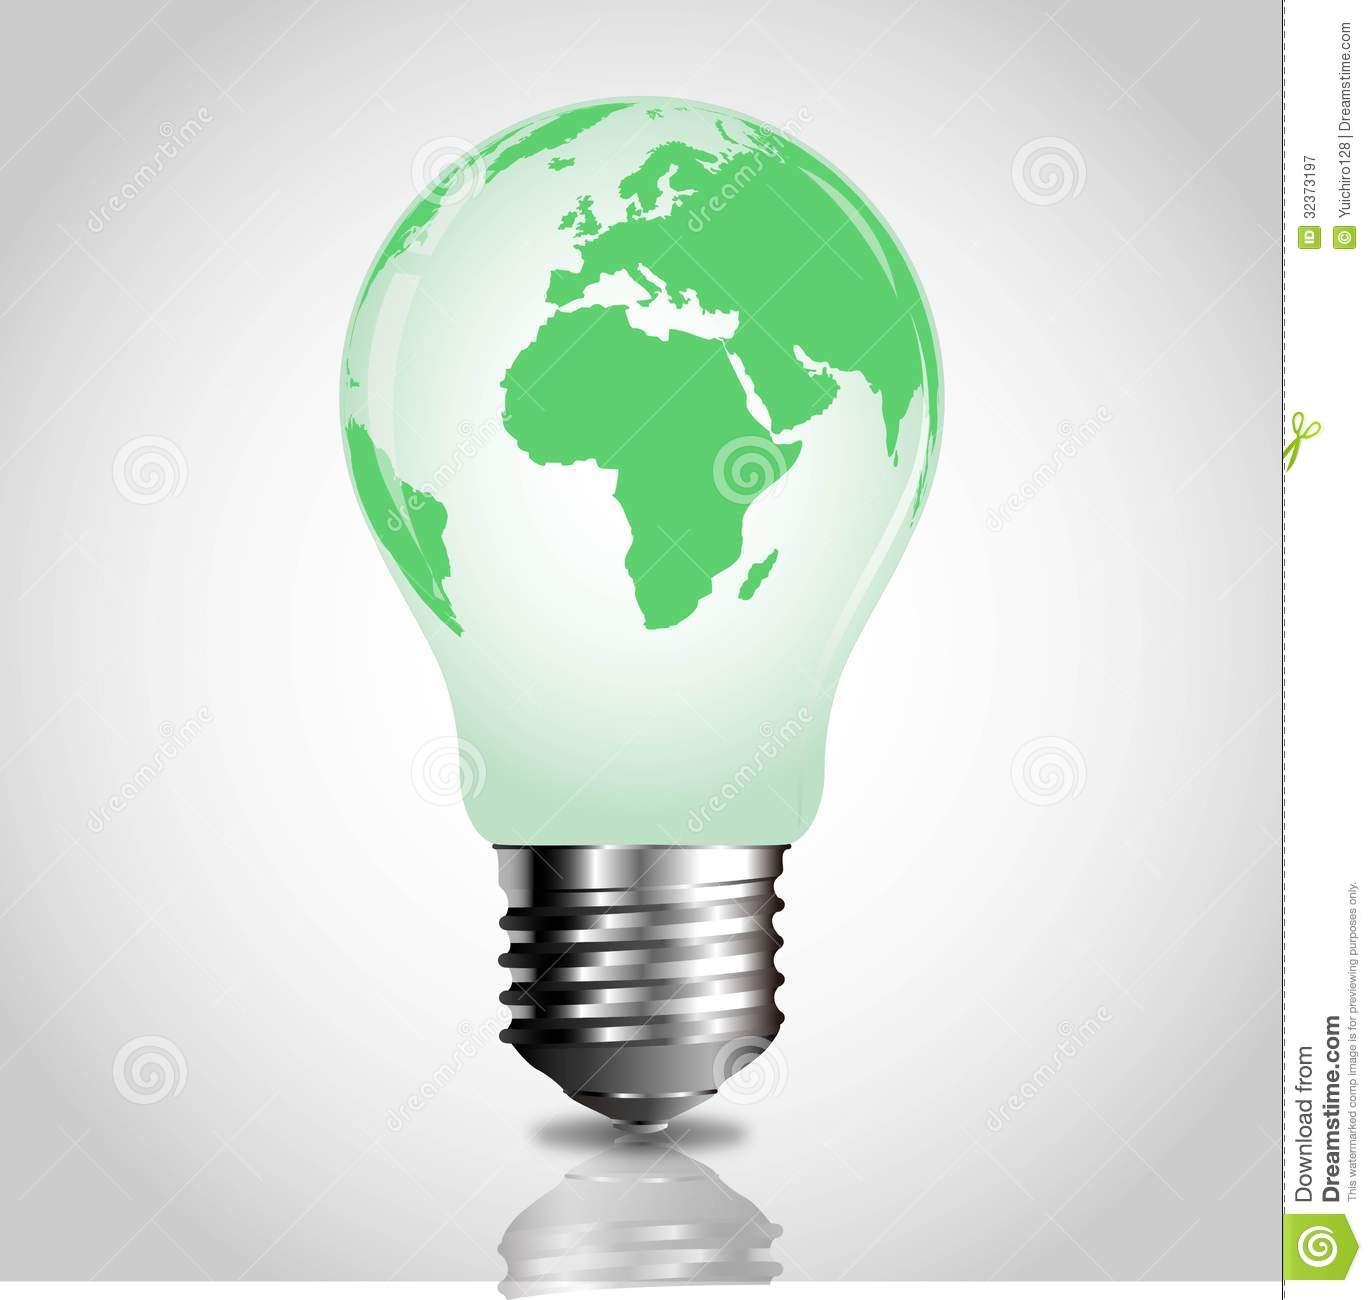 World In A Bulb Light bulb with green world